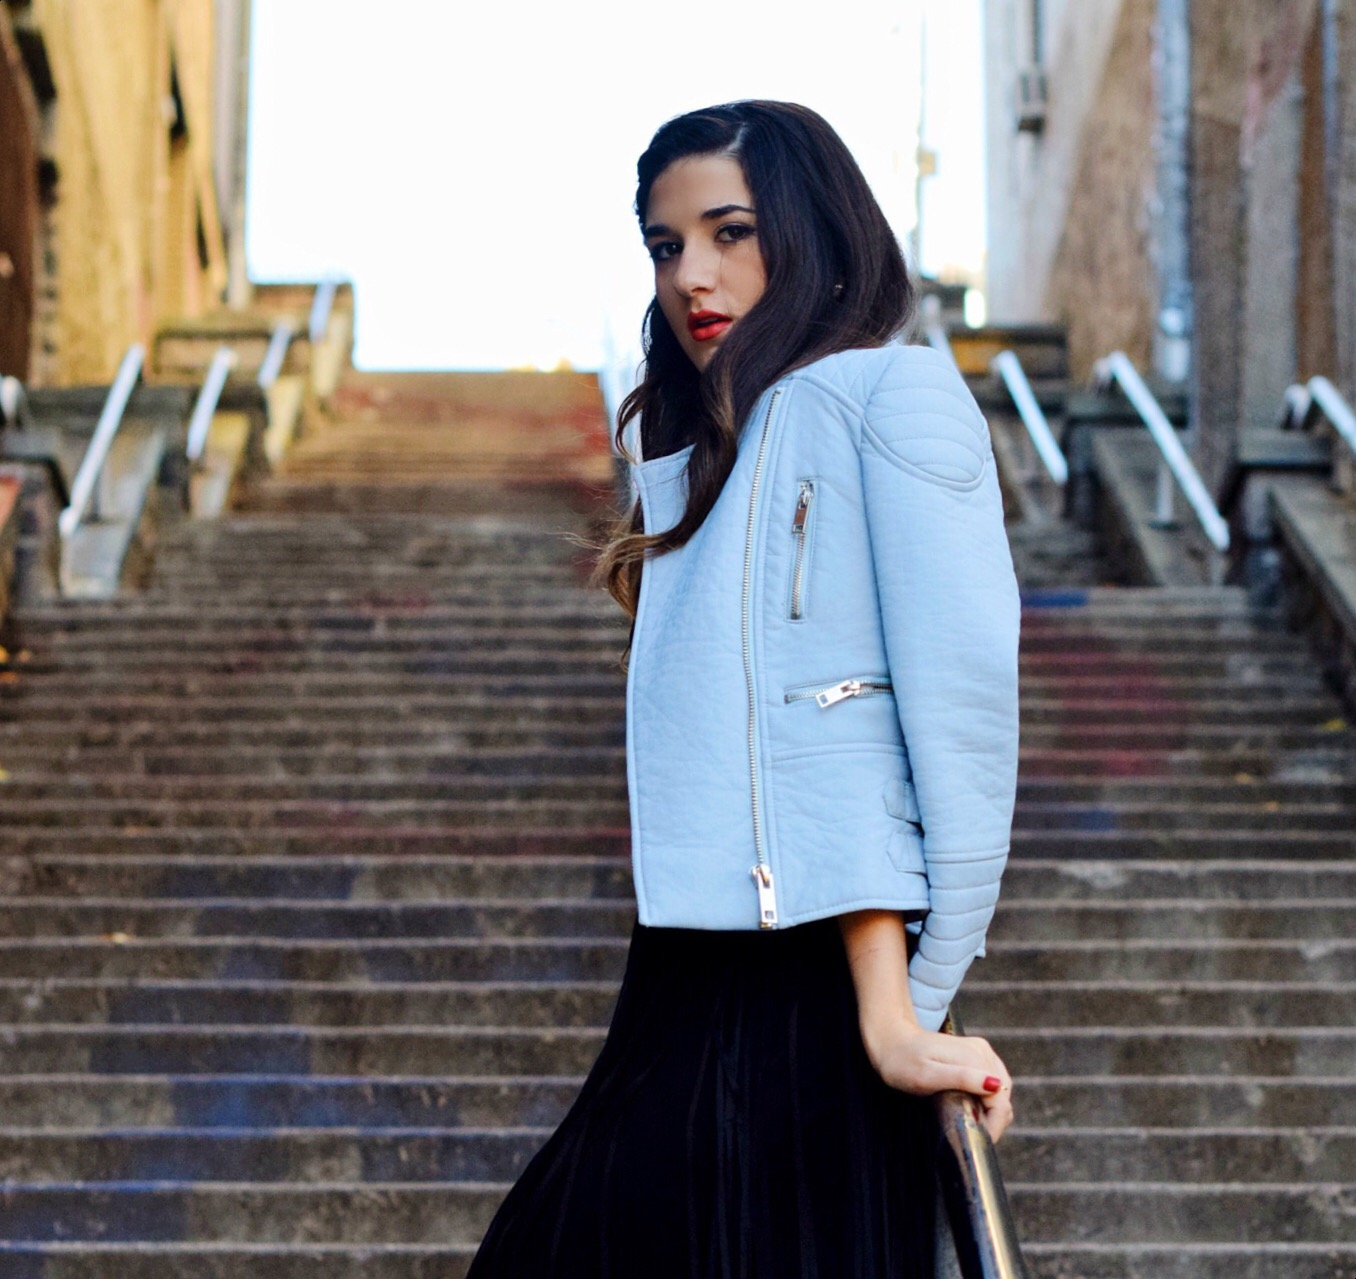 Black Fringe Dress Trèscool Louboutins & Love Fashion Blog Esther Santer NYC Street Style Blogger Baby Blue Leather Jacket Zara Hair Girl Model Photoshoot Booties Nordstrom Outfit OOTD Red Nail Polish Shop Pretty Trendy  Fall Look Shoes Winter Inspo.jpg